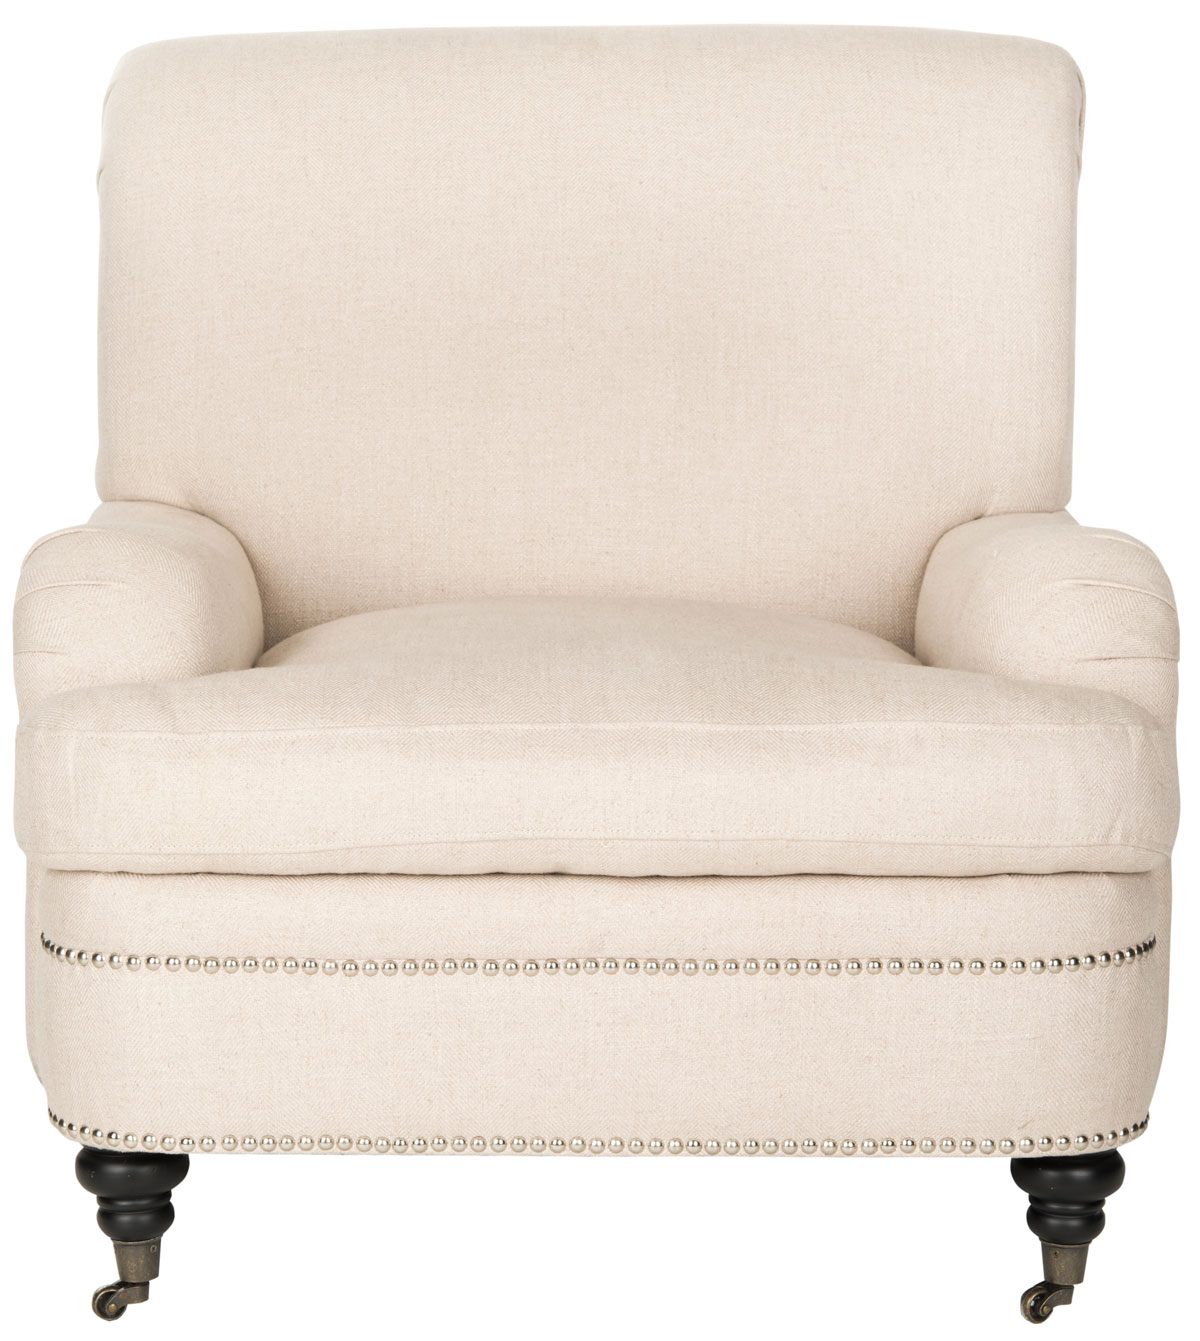 SILVIA LINEN CLUB CHAIR   SILVER NAIL HEADS MCR4739A ACCENT CHAIRS